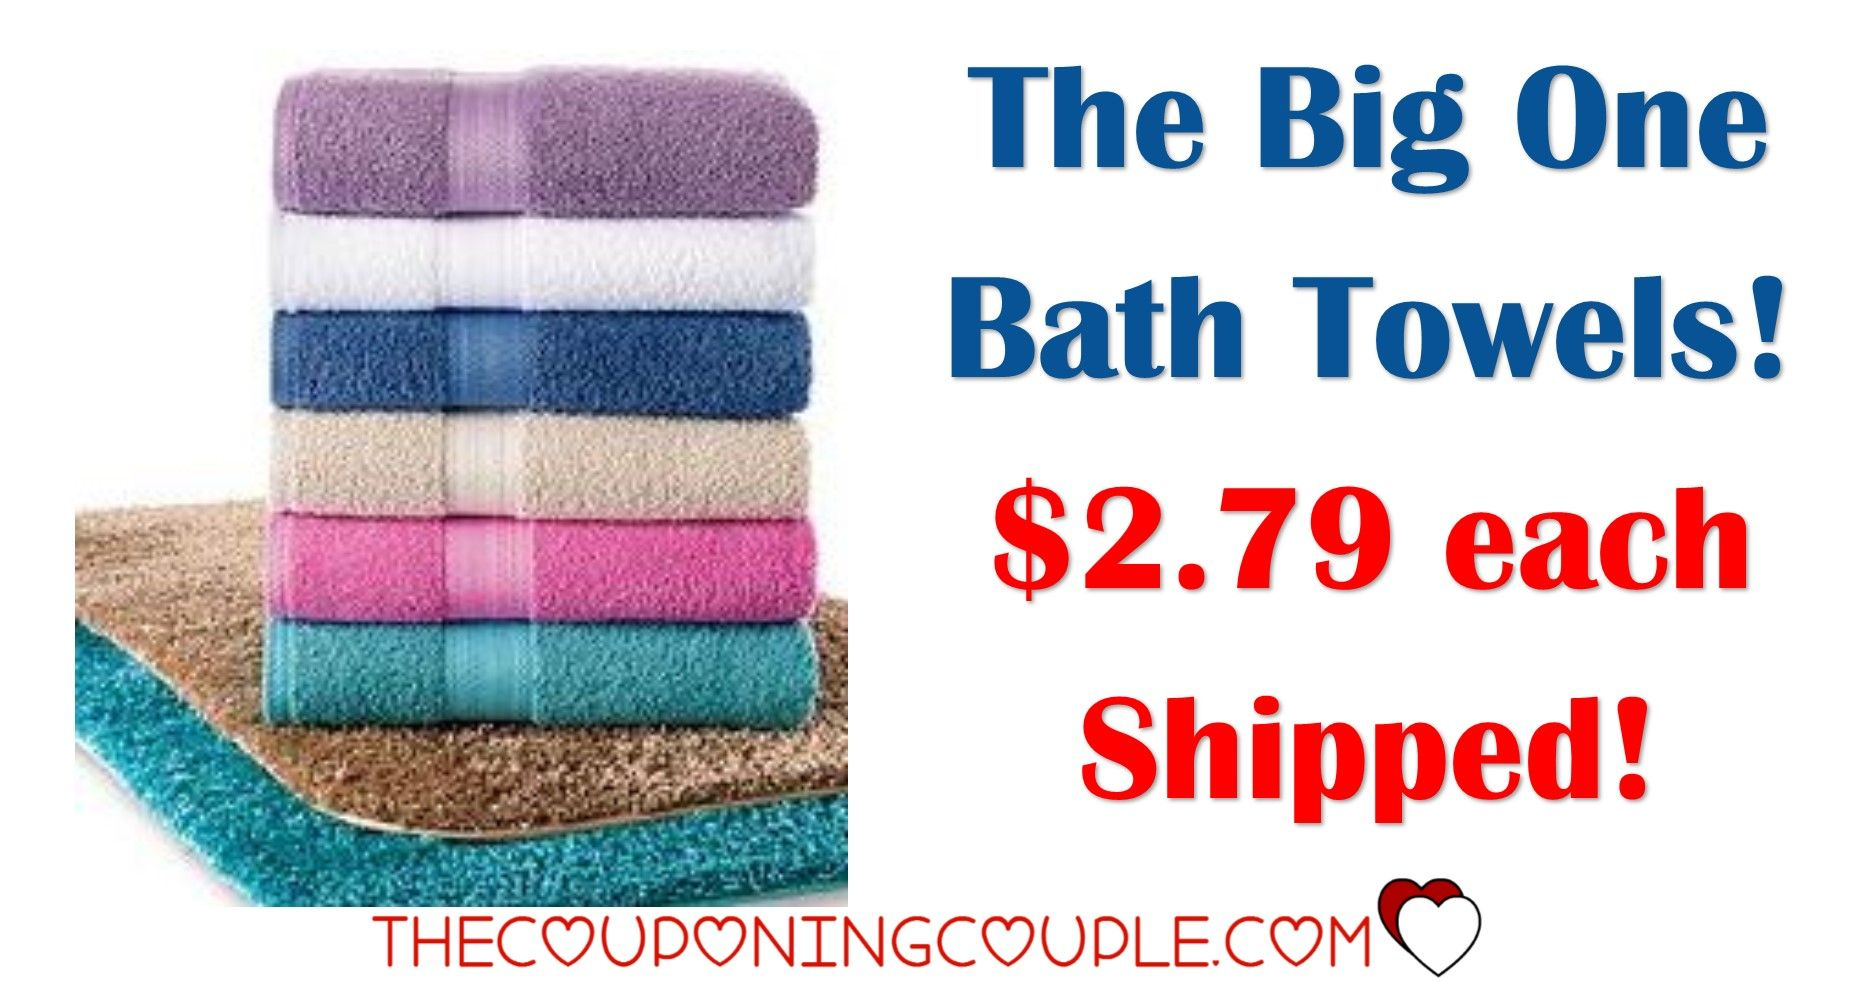 Kohls Bath Towels Delectable Kohl's The Big One Bath Towels As Low As $279 Each  Coupon Matchups Design Decoration